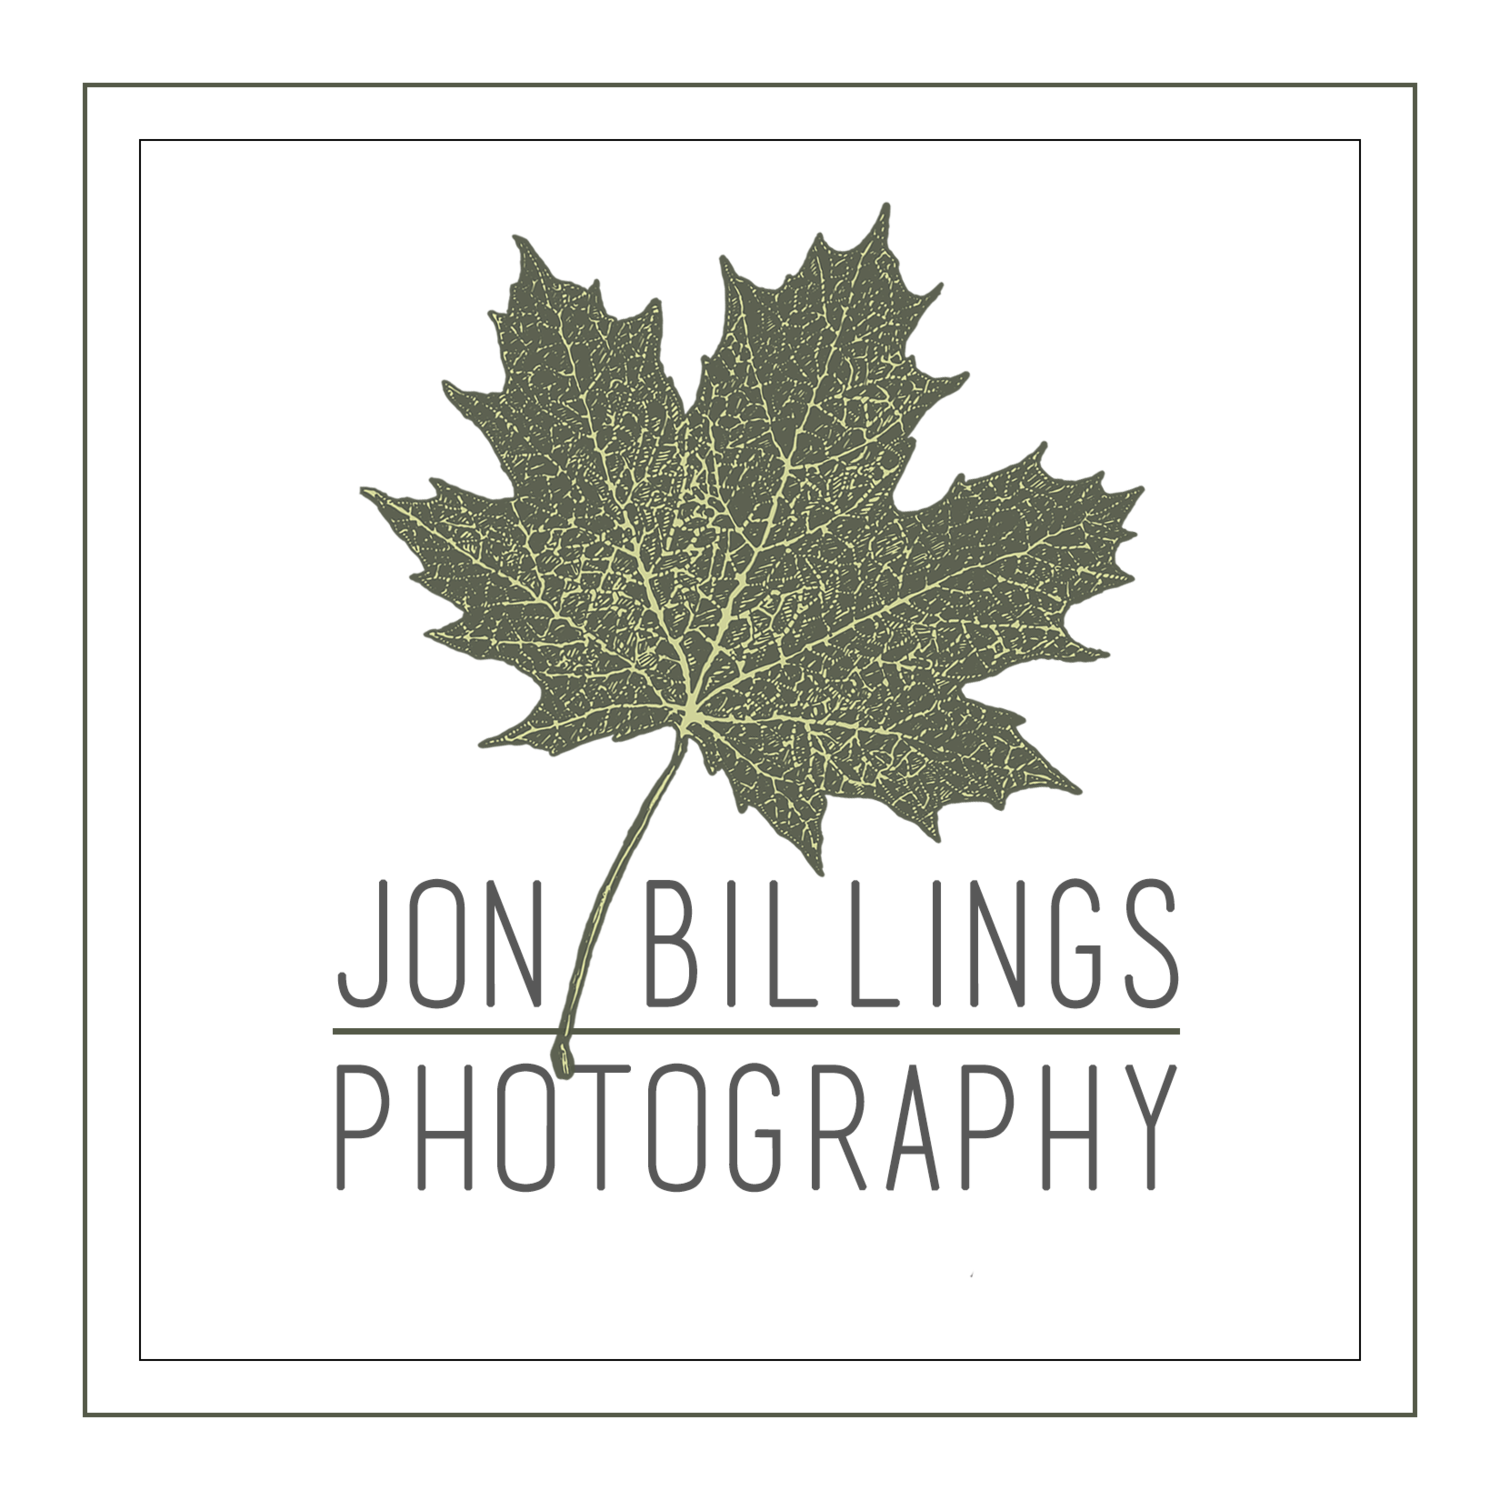 Jon Billings Photography